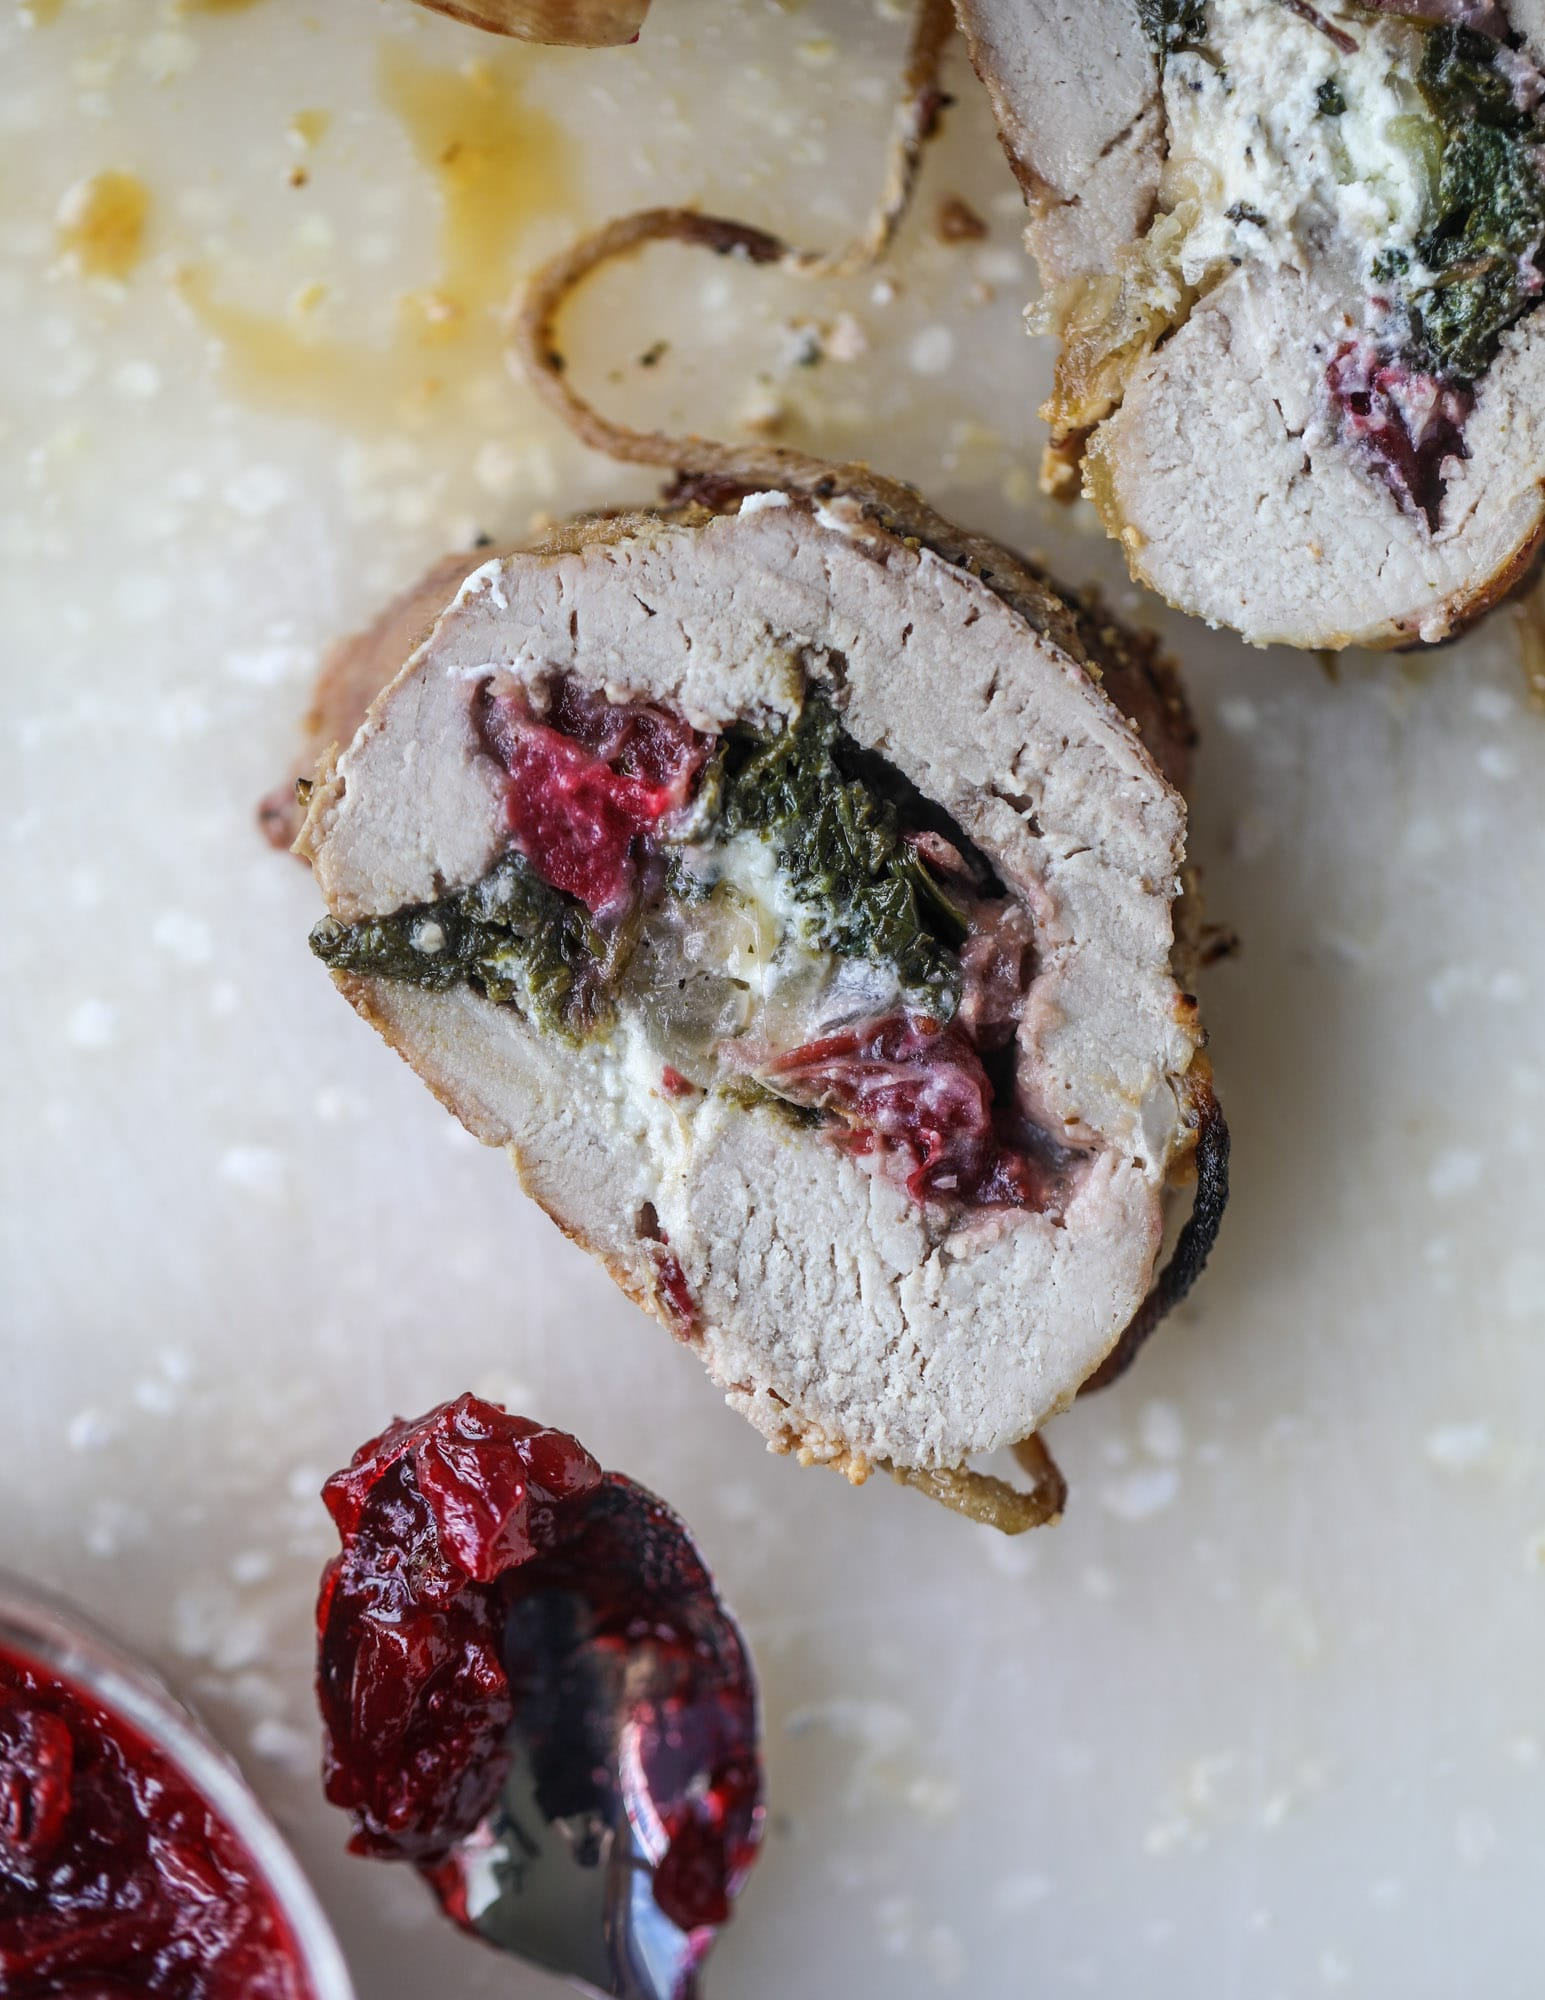 This holiday stuffed pork tenderloin is filled with caramelized onion, fresh cranberry sauce, goat cheese and fresh spinach. It's a show stopped and super delicious, along with being fairly simple to make! I howsweeteats.com #stuffed #porktenderloin